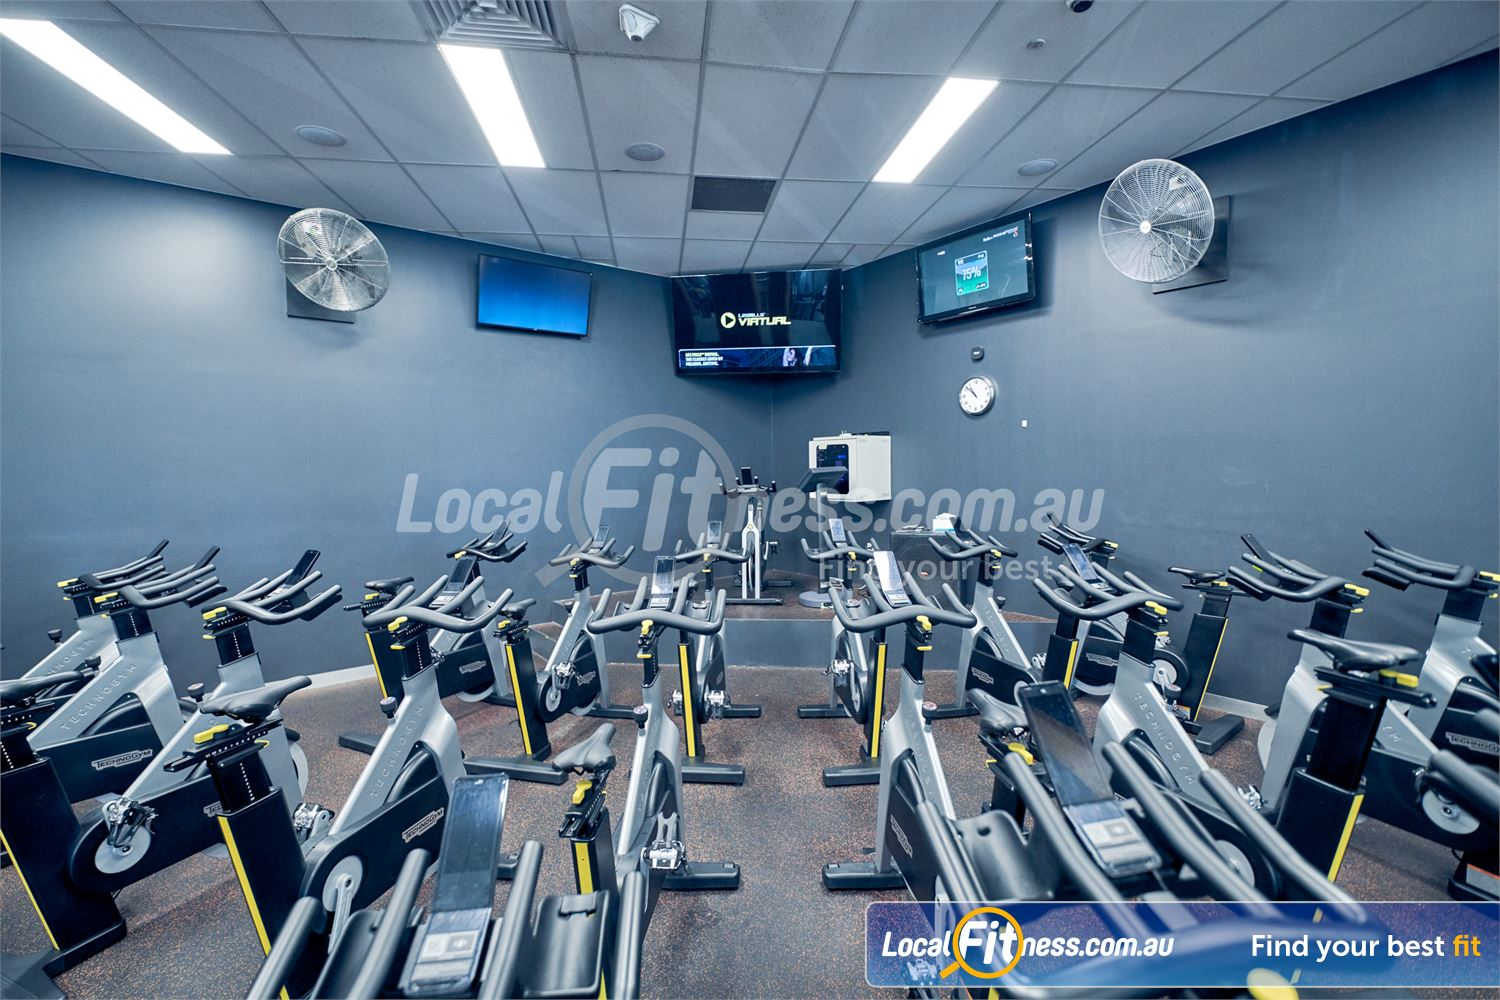 Eltham Leisure Centre Near North Warrandyte The dedicated Eltham cycle studio with virtual cycle technology.